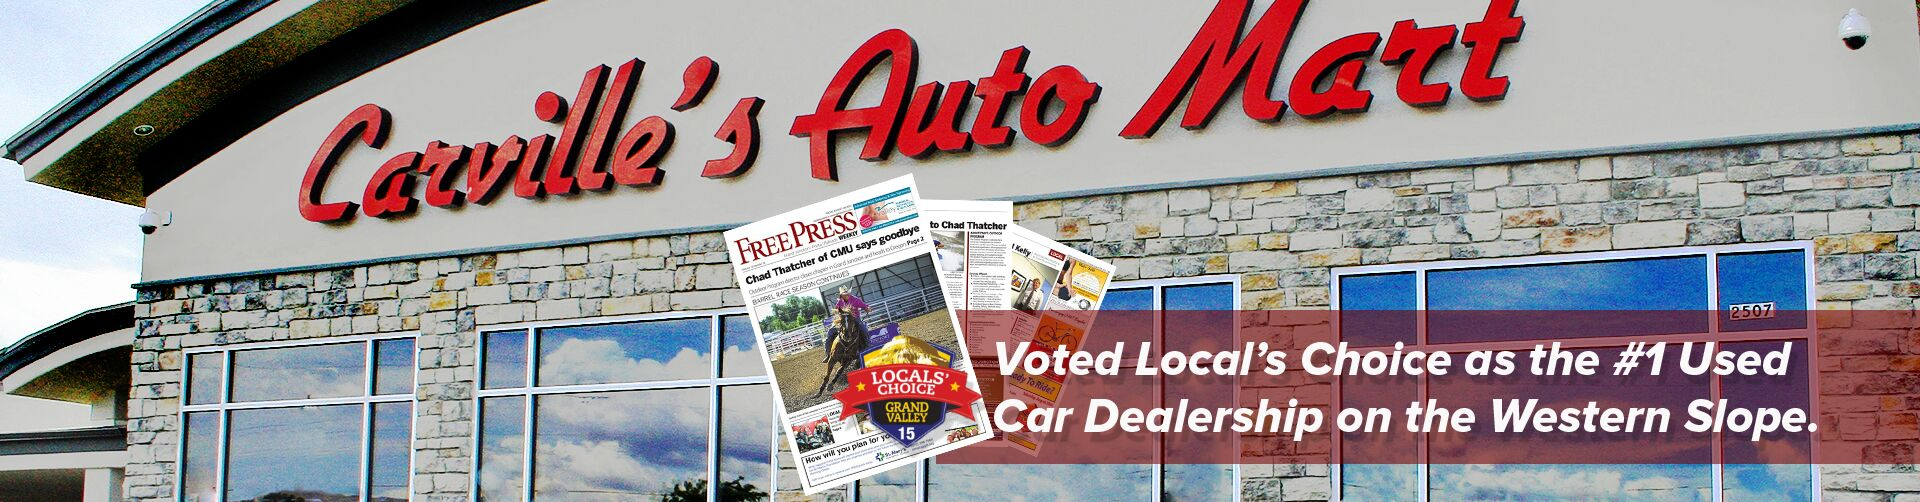 #1 Used Car Dealership on the Western Slope